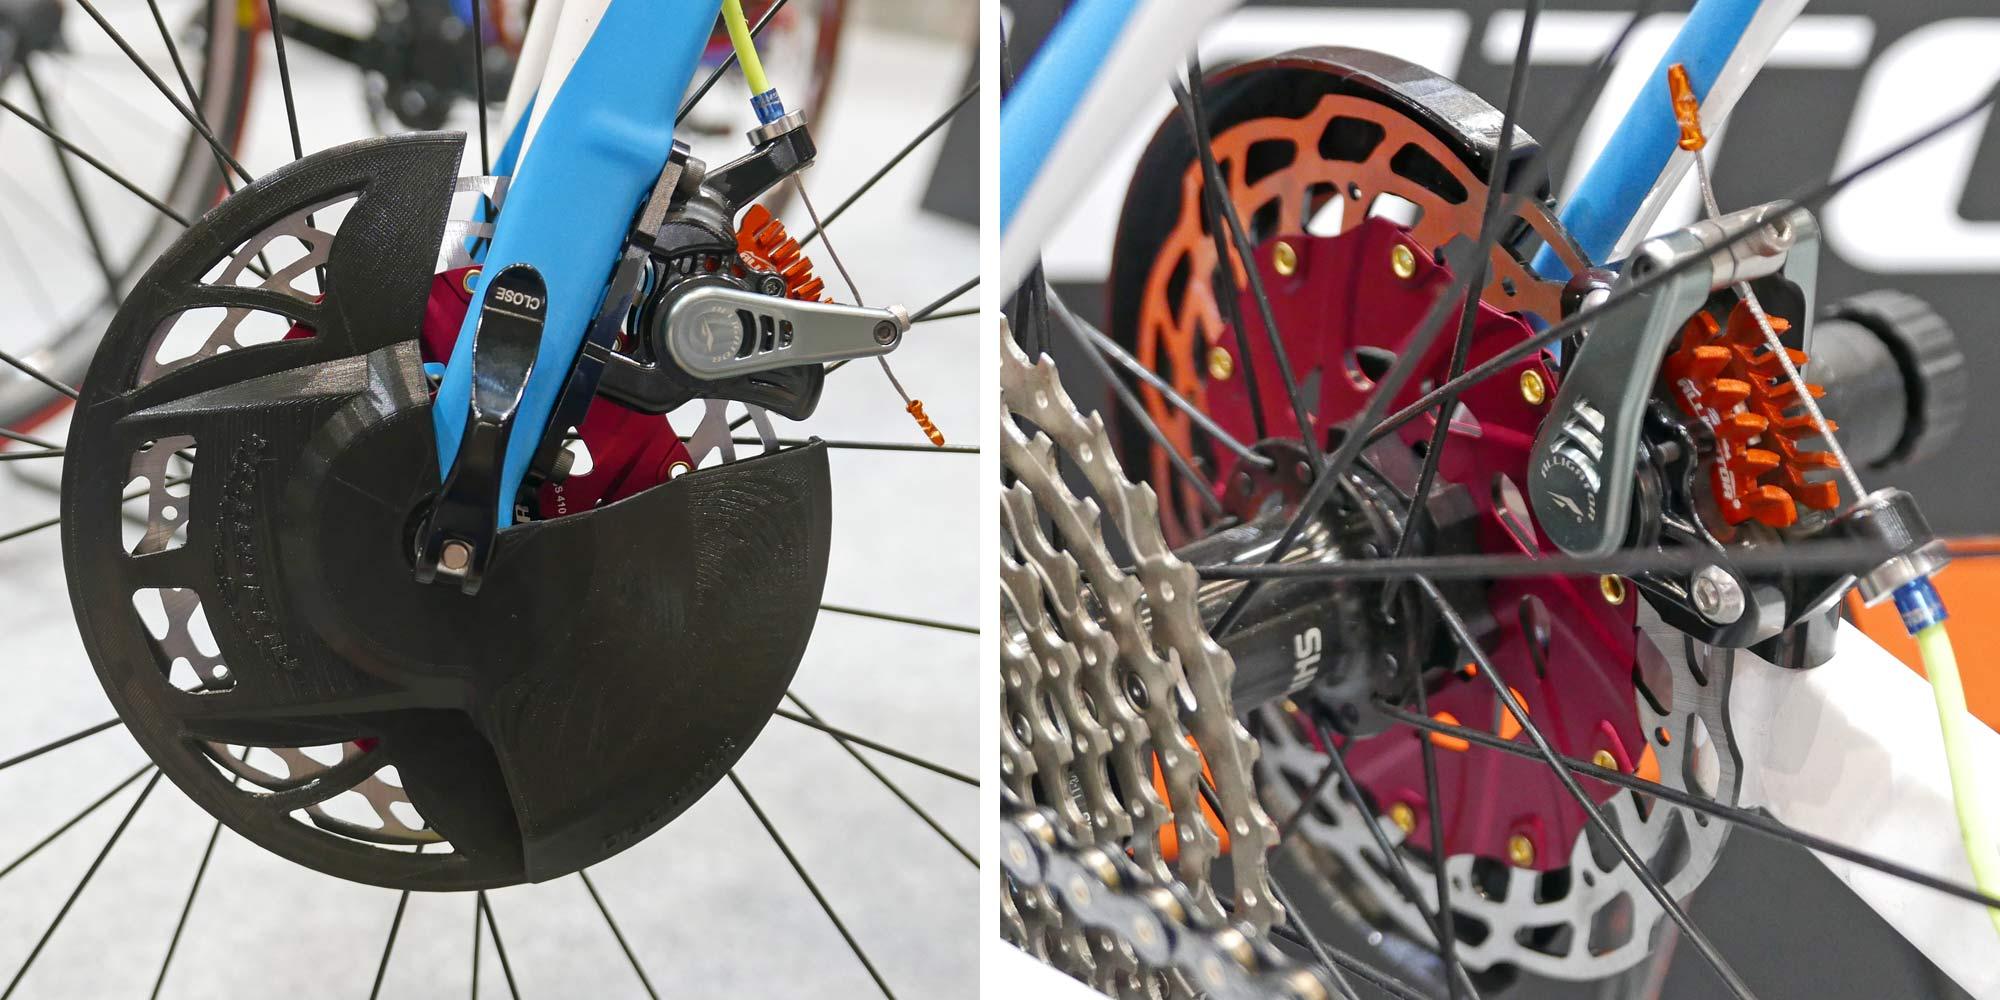 Alligator Disc Covers, prototype cooling rotor protectors, road bike disc brake rotor protective covers with integrated anti-overheating cooling